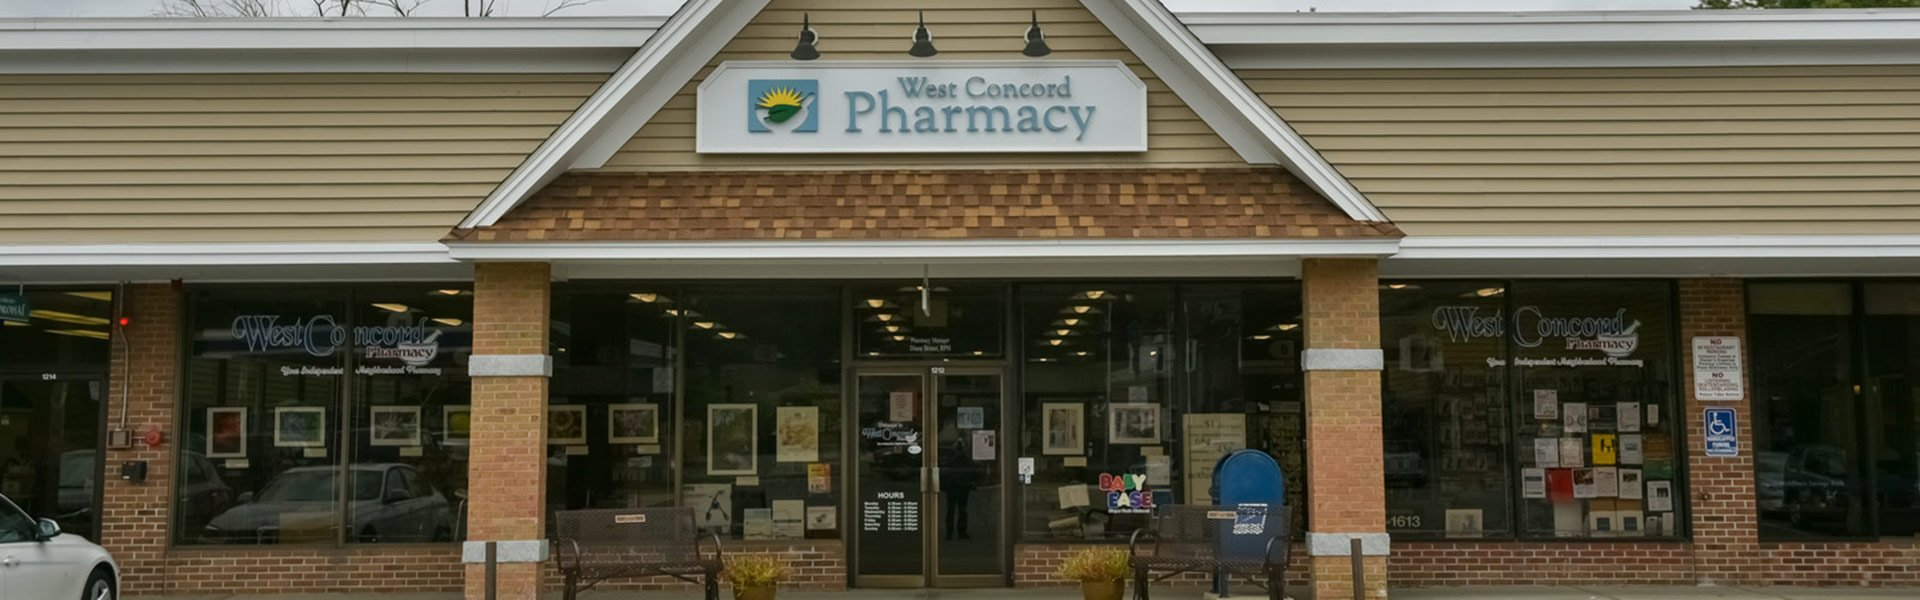 Acton Pharmacy, Acton, MA is a community pharmacy that offers prescriptions, compounded medications and specialty home medical products